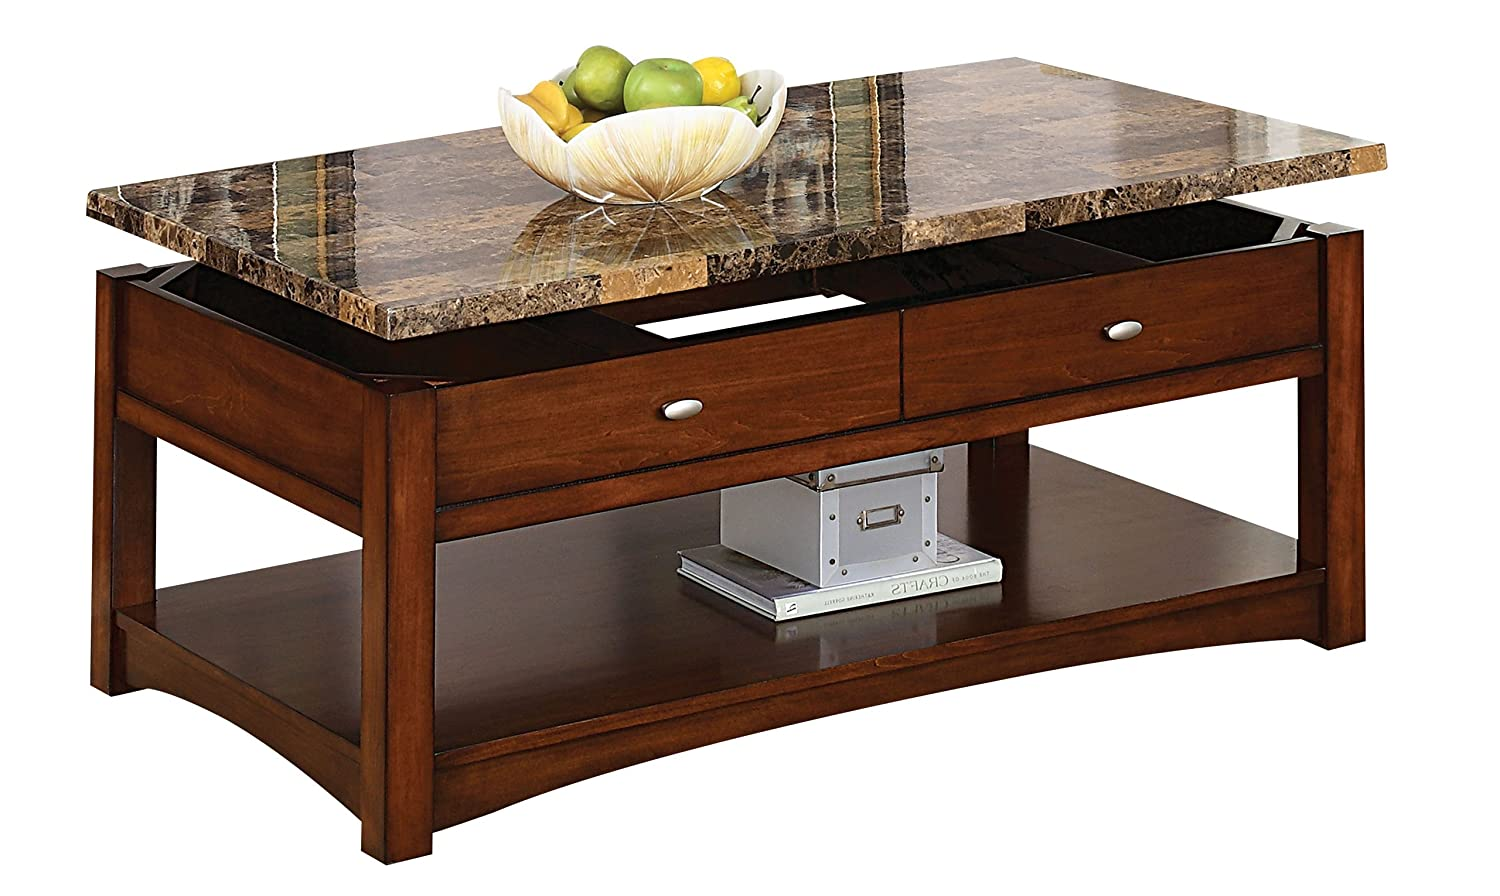 Amazon.com: Acme 80020 Jas Faux Marble Lift Top Coffee Table, Cherry  Finish: Kitchen U0026 Dining